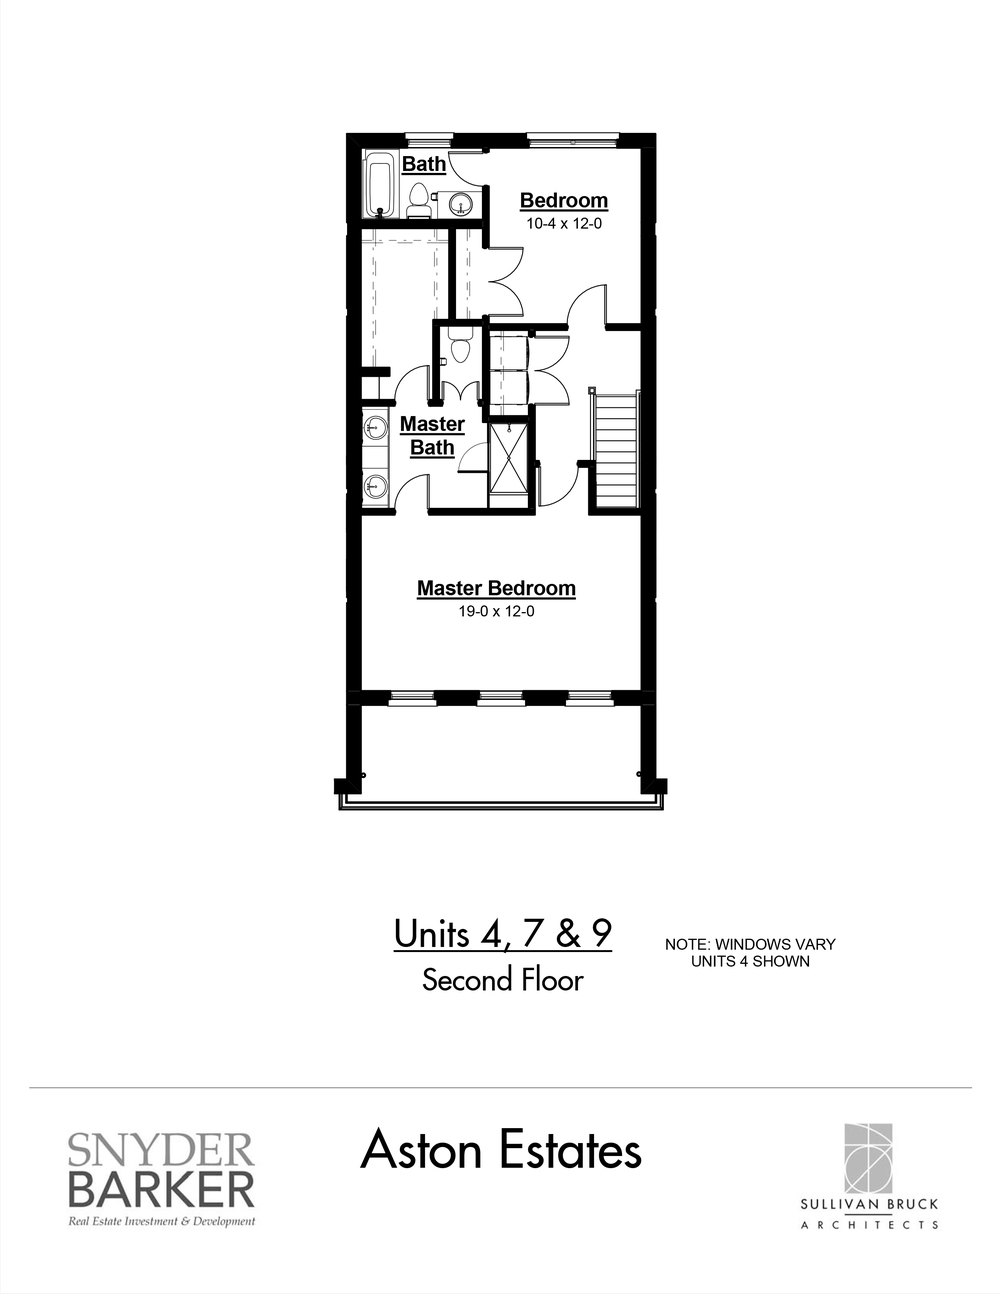 Aston_Estates_Unit_4_7_9_Second_Floor.jpg